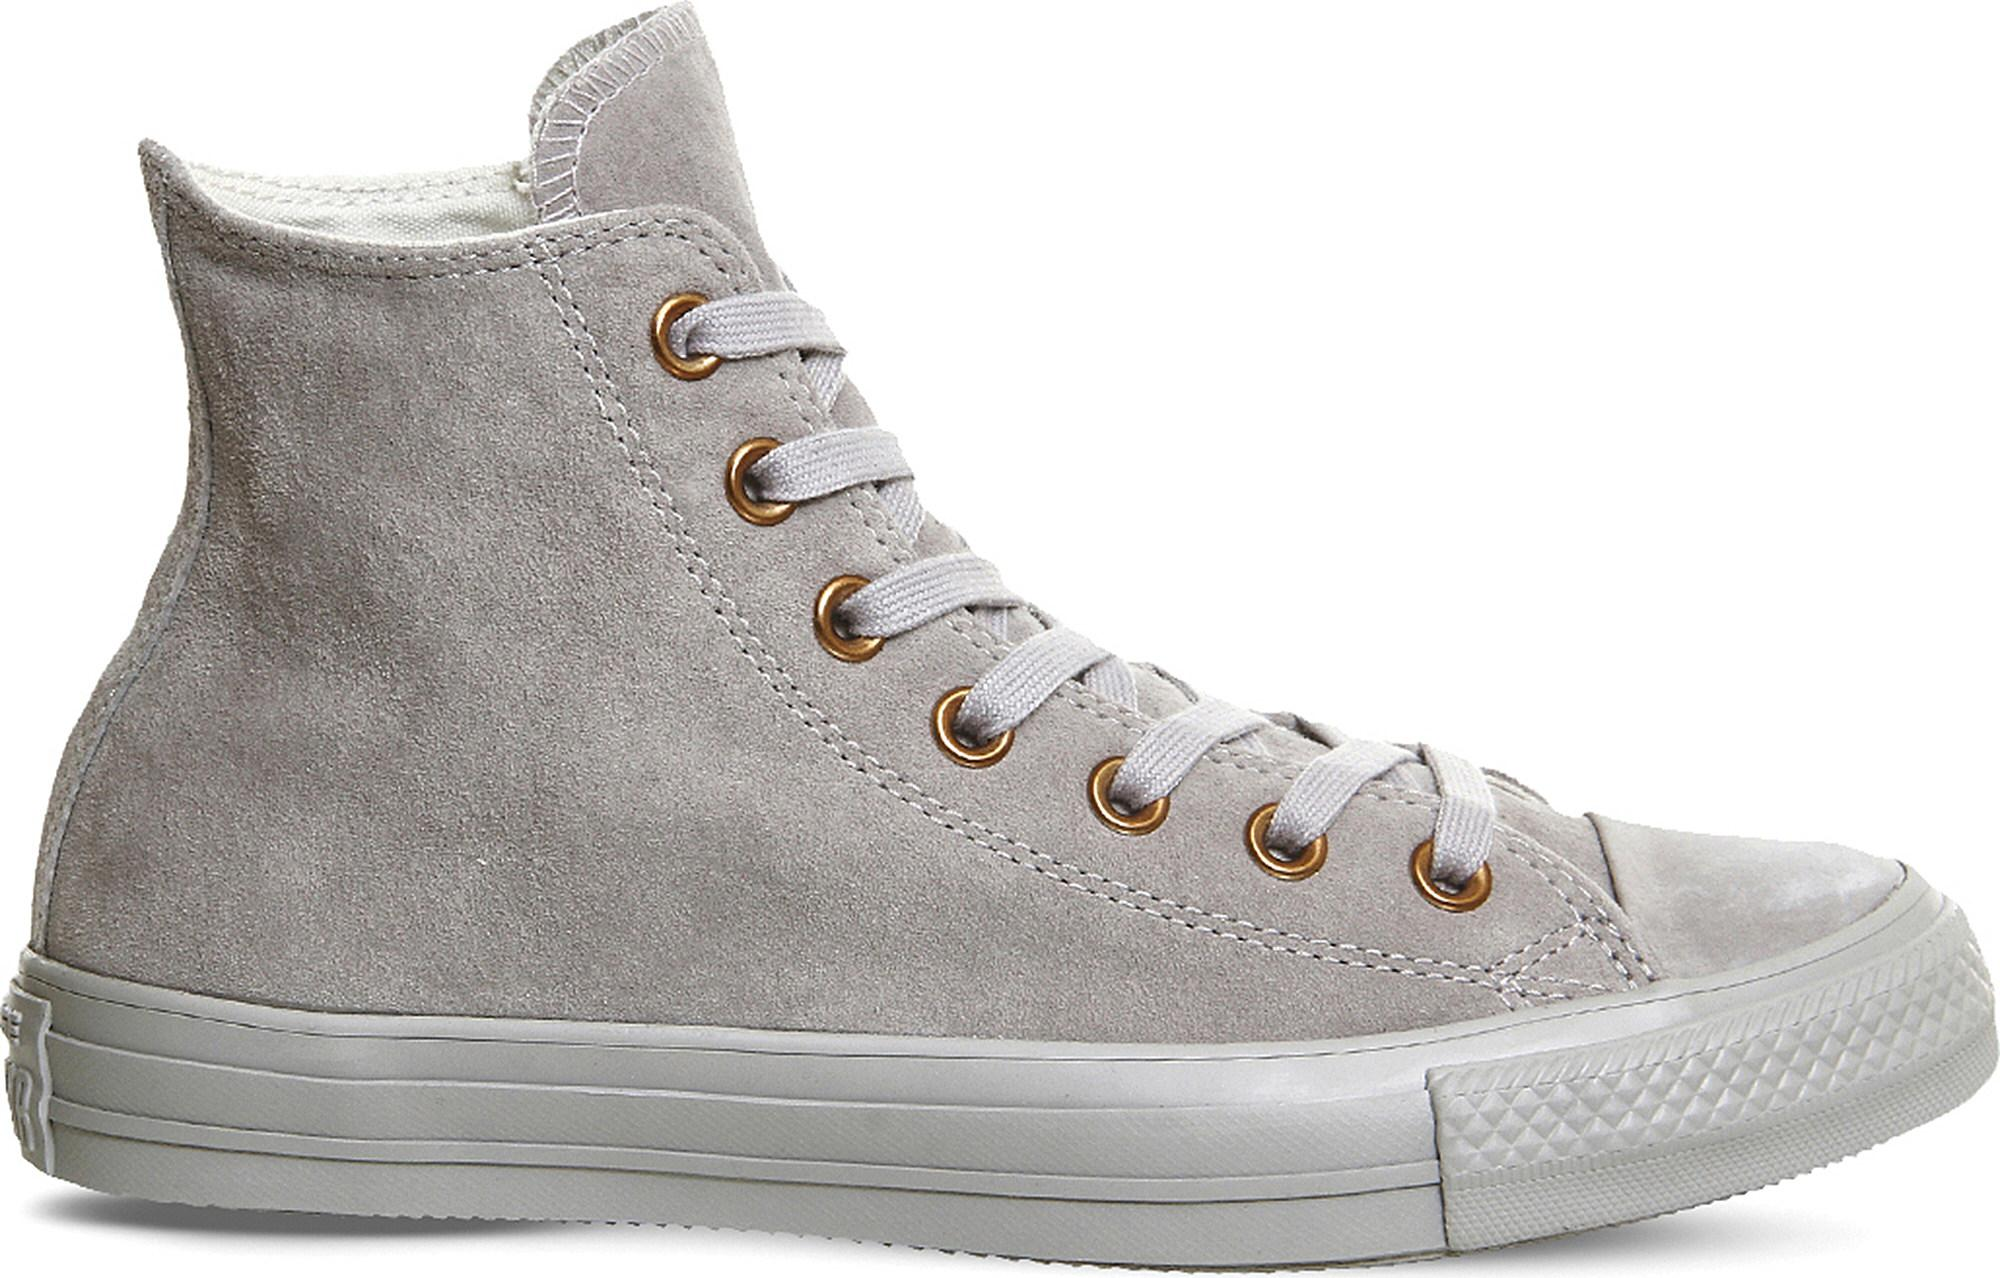 ef753dbc8e8 Converse Mens All Star Hi Ash Grey   Rose Gold Suede High Top ...